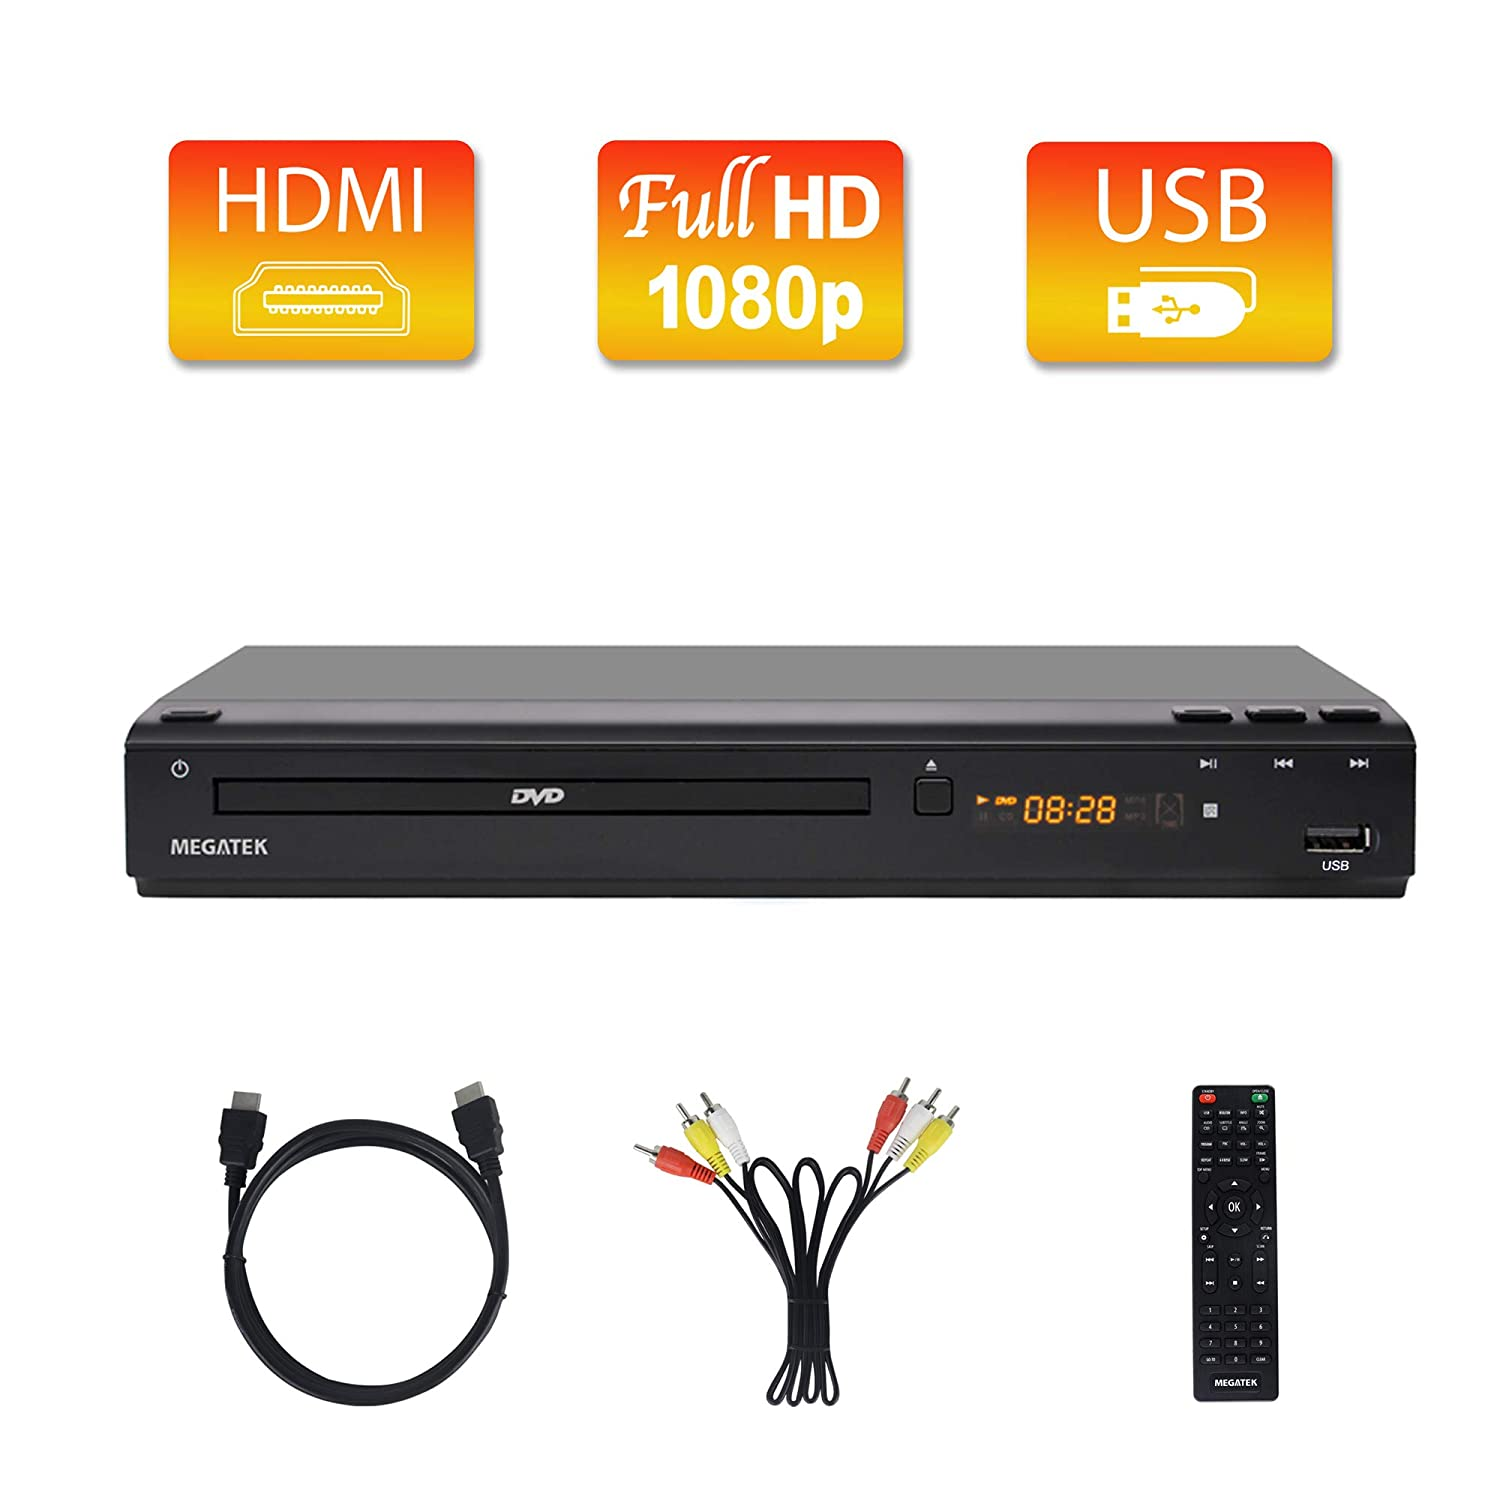 [Upgraded] Megatek Multi Region DVD Player, HDMI Full HD 1080p Upscaling, USB Direct Playback, Free 5-Feet HDMI Cable, Premium Middle Size Metal Case, New User-Friendly Remote Control